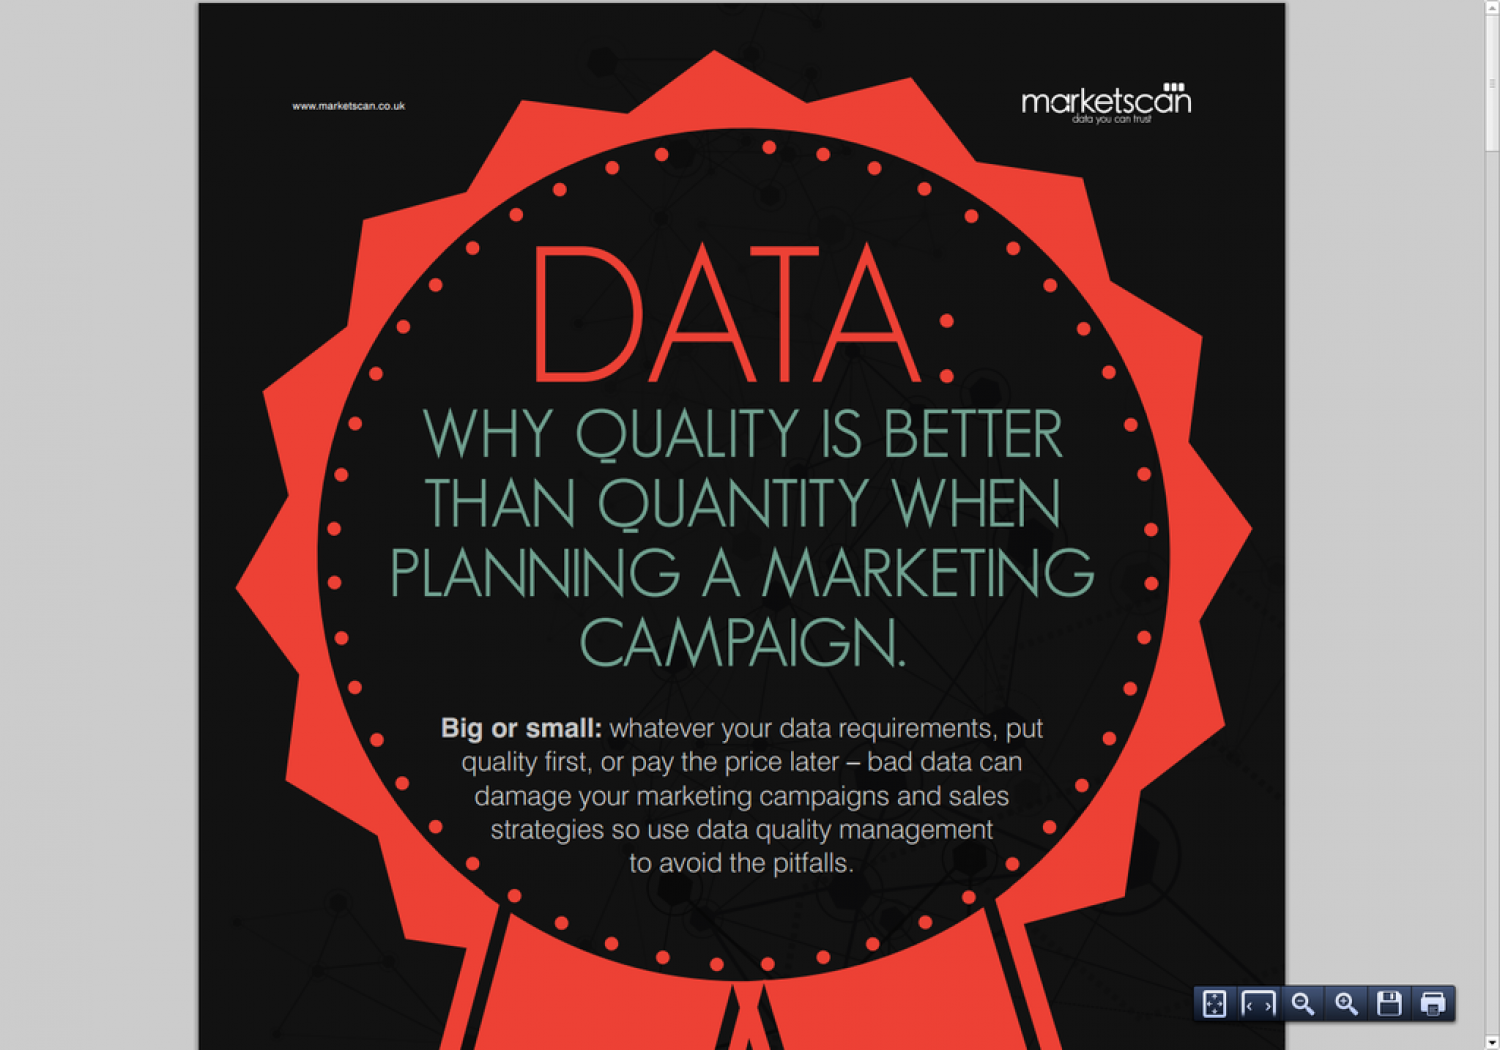 Why Quality is Better Than Quantity When Planning a Marketing Campaign Infographic